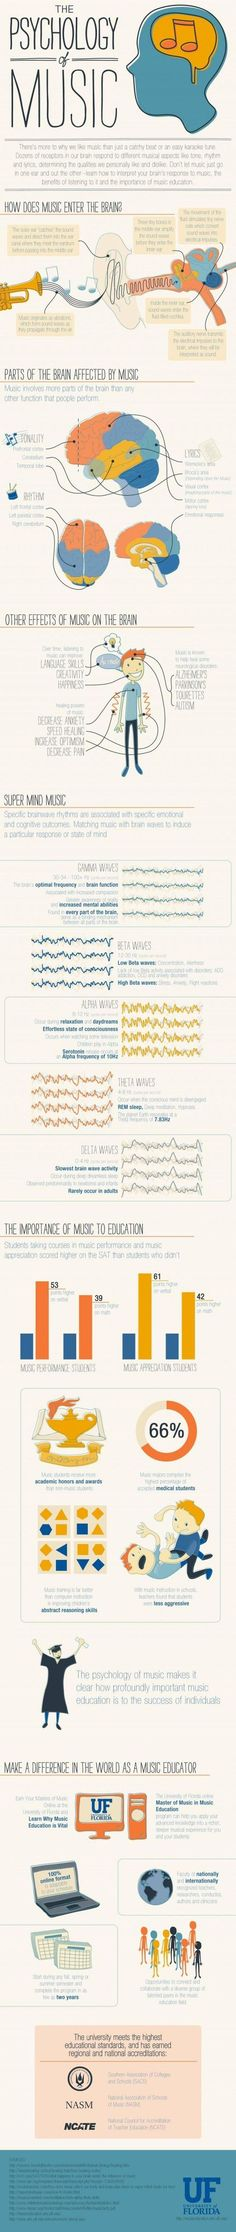 """Infographic about """"The Psychology of Music"""" - from University of Florida Musico terapia - psicologia della musica Restorative Dentistry, Elementary Music, Elementary Schools, Teaching Music, Teaching Tools, Teaching Biology, Teaching Class, Music Therapy, Music Classroom"""